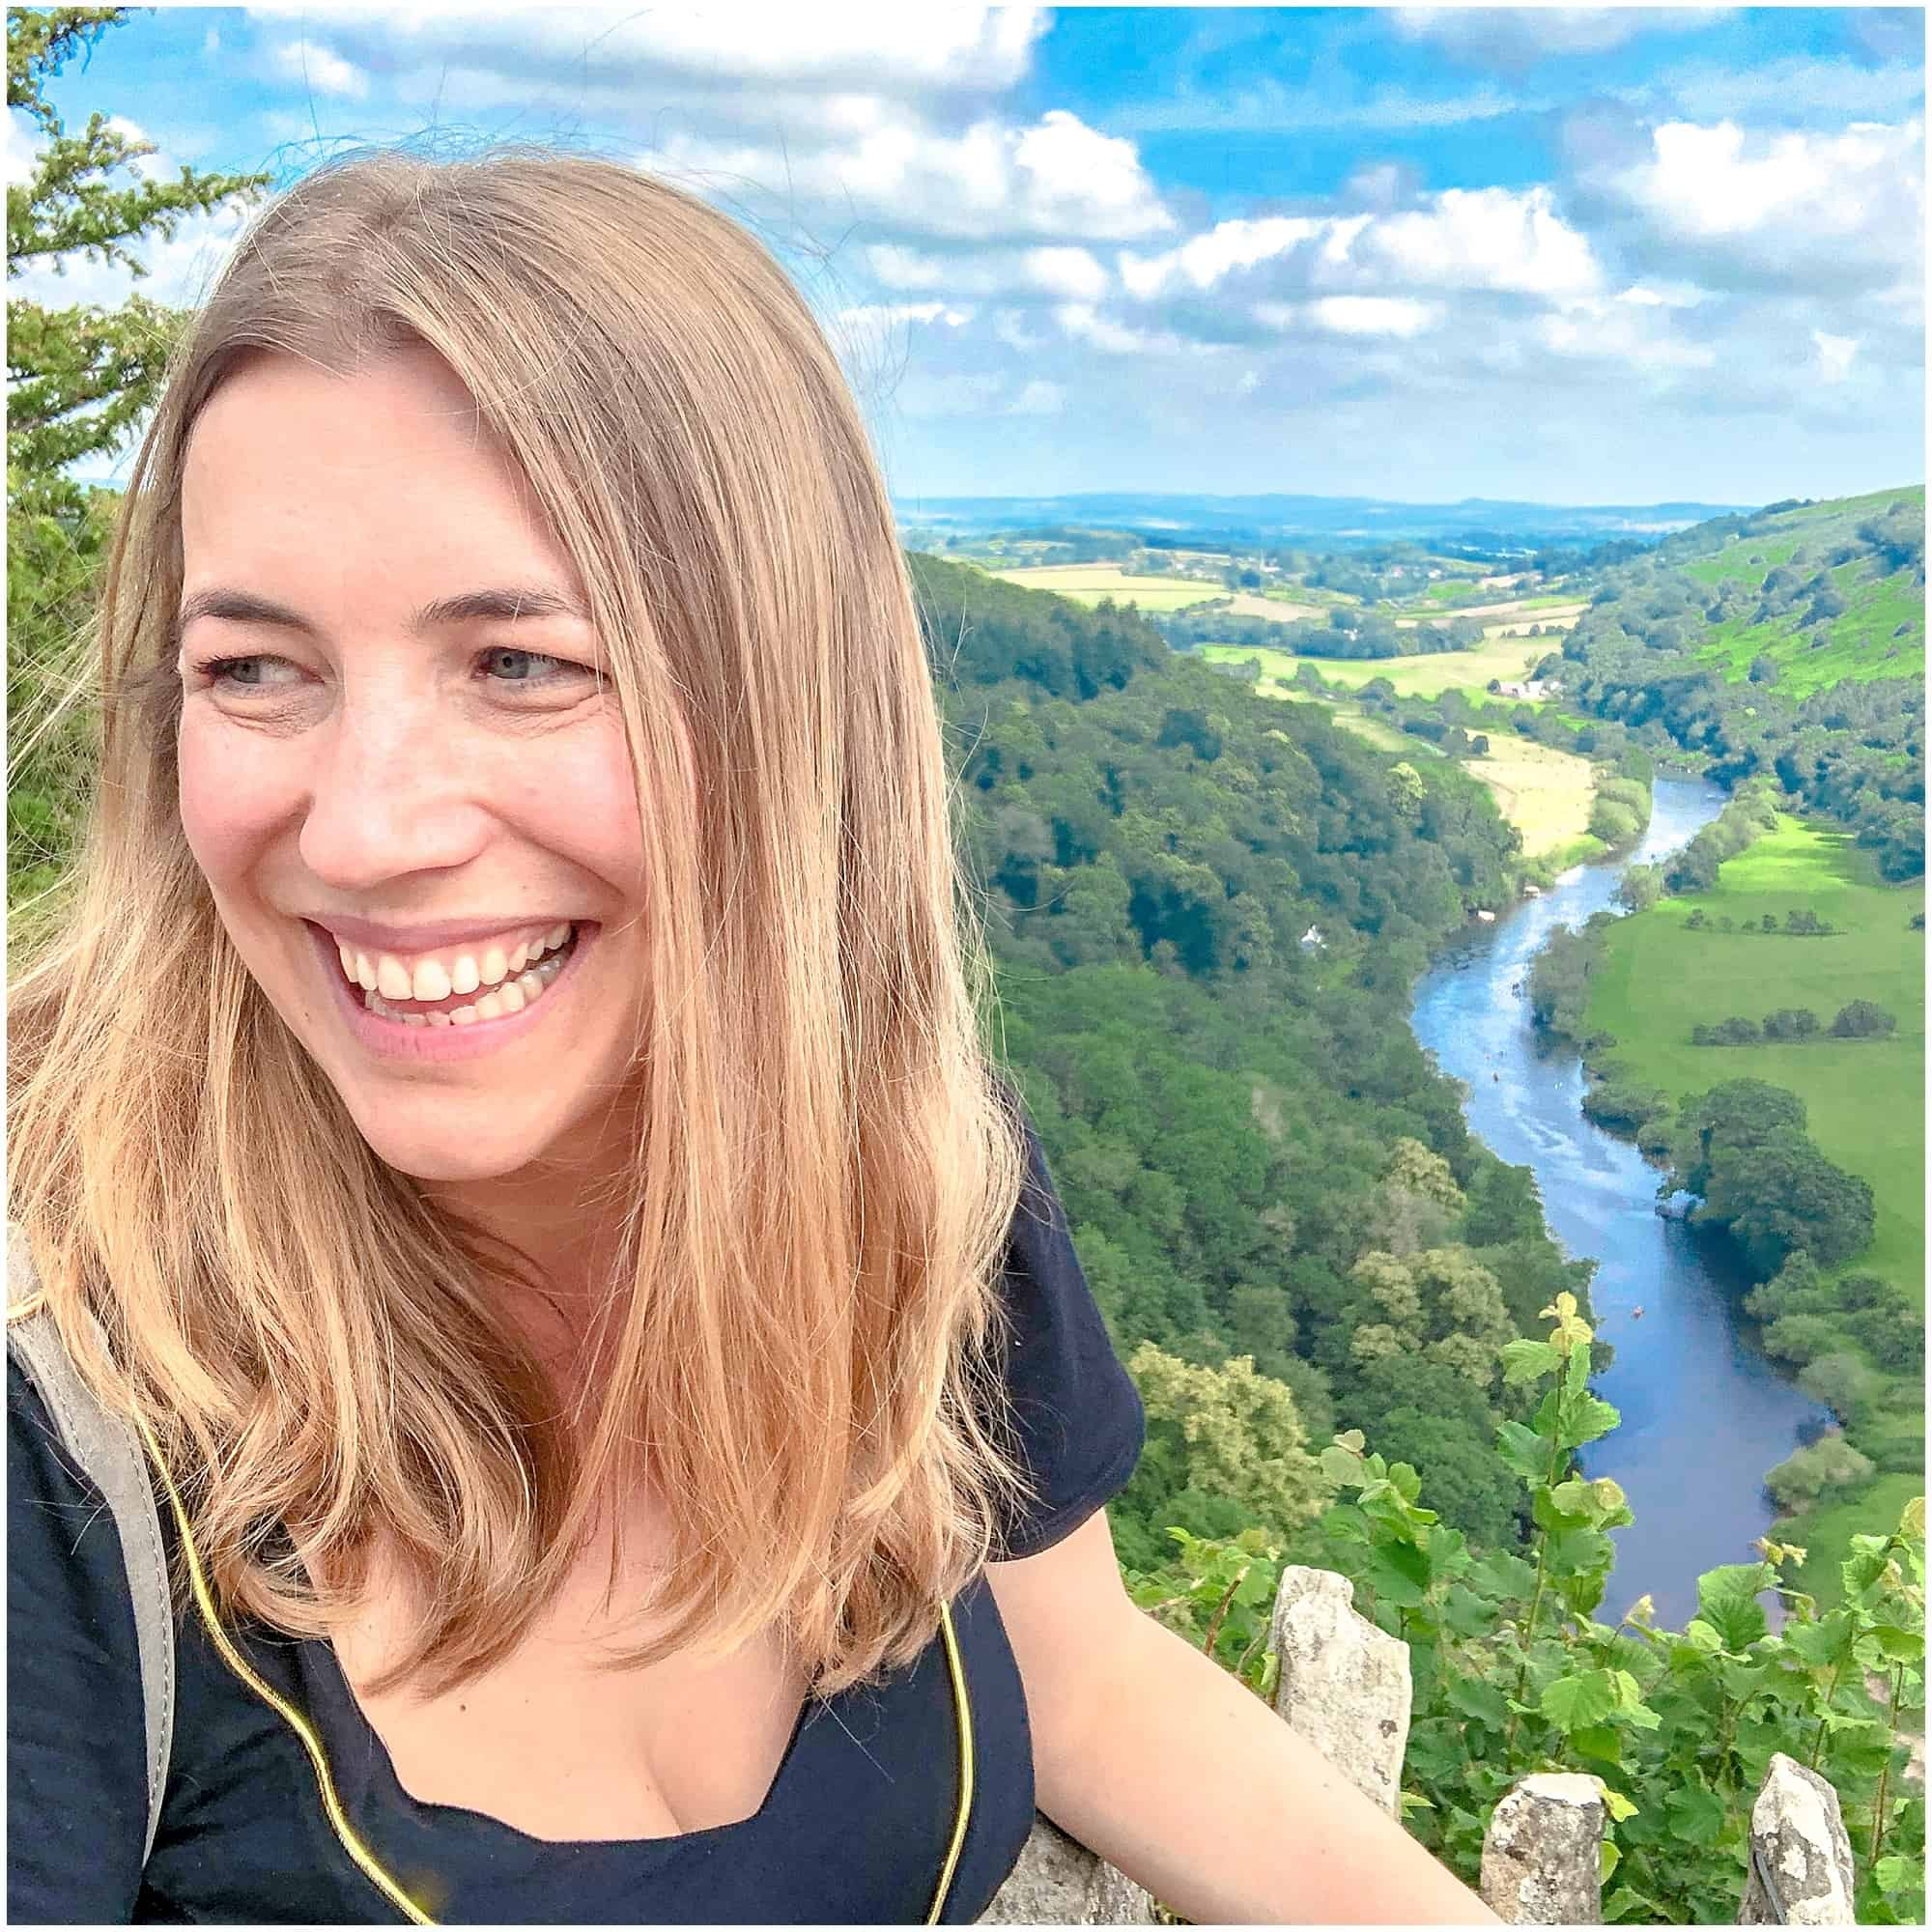 Abigail King at the Symonds Yat Rock Viewpoint